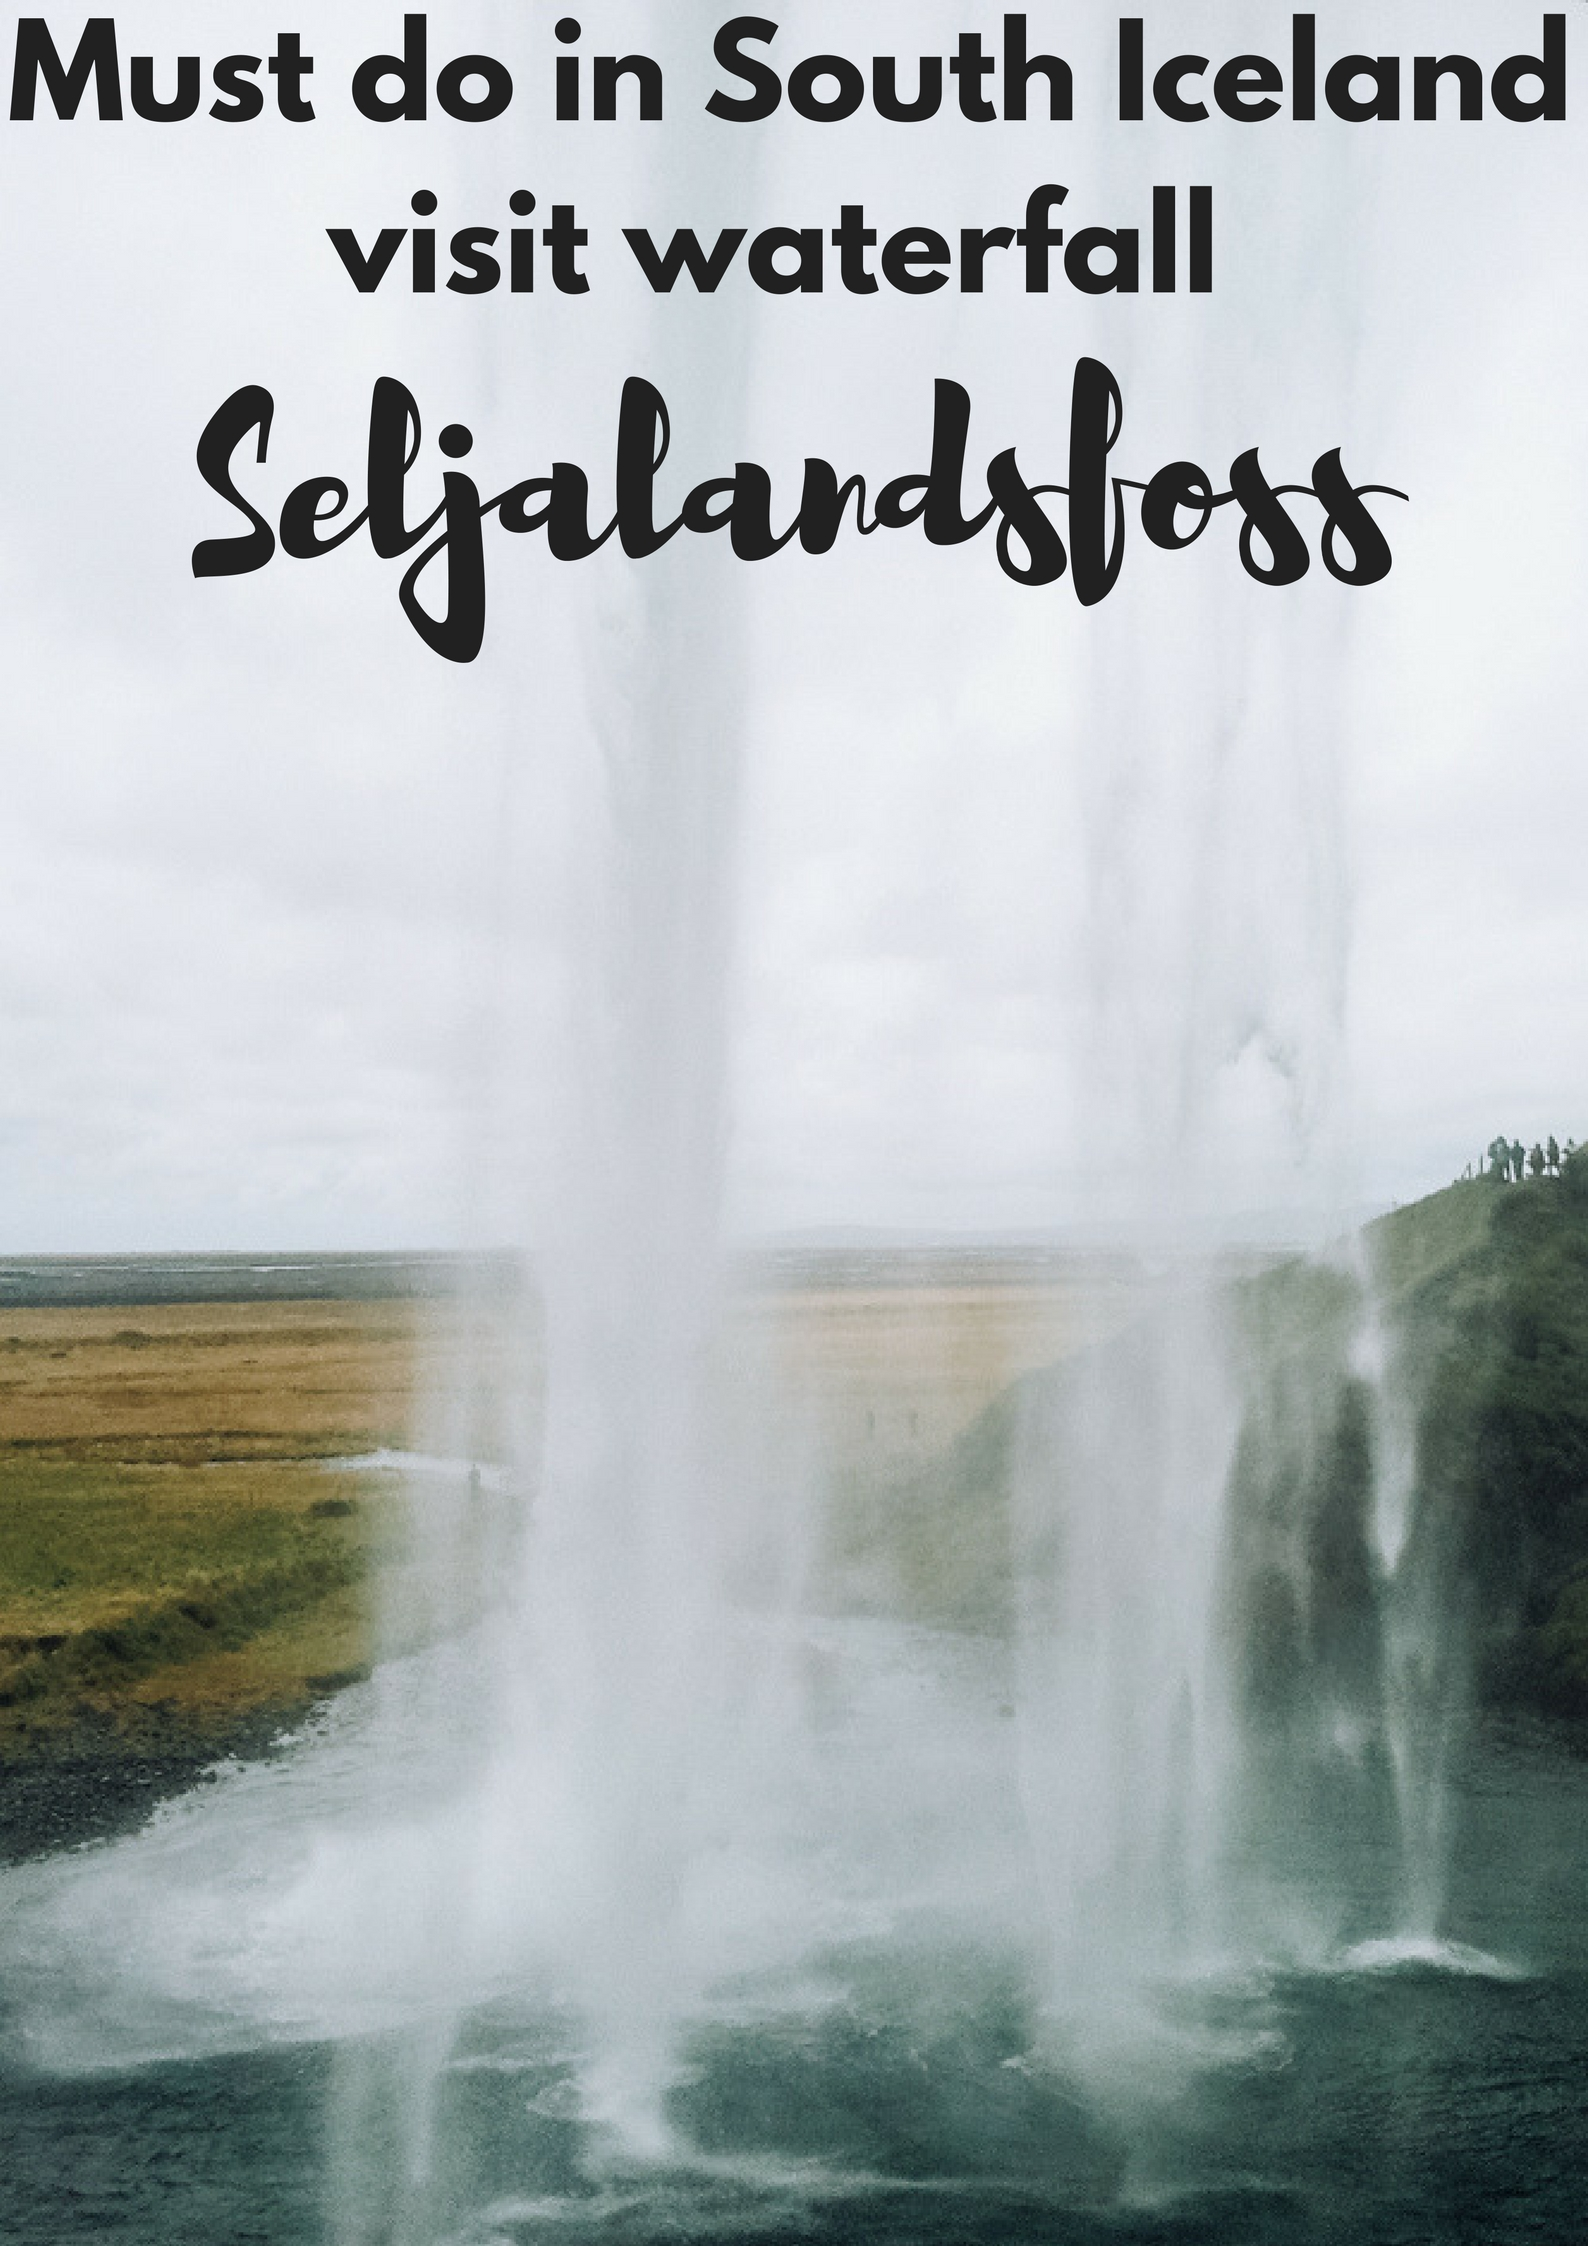 Must do in South Iceland: visit waterfall Seljalandsfoss - Map of Joy